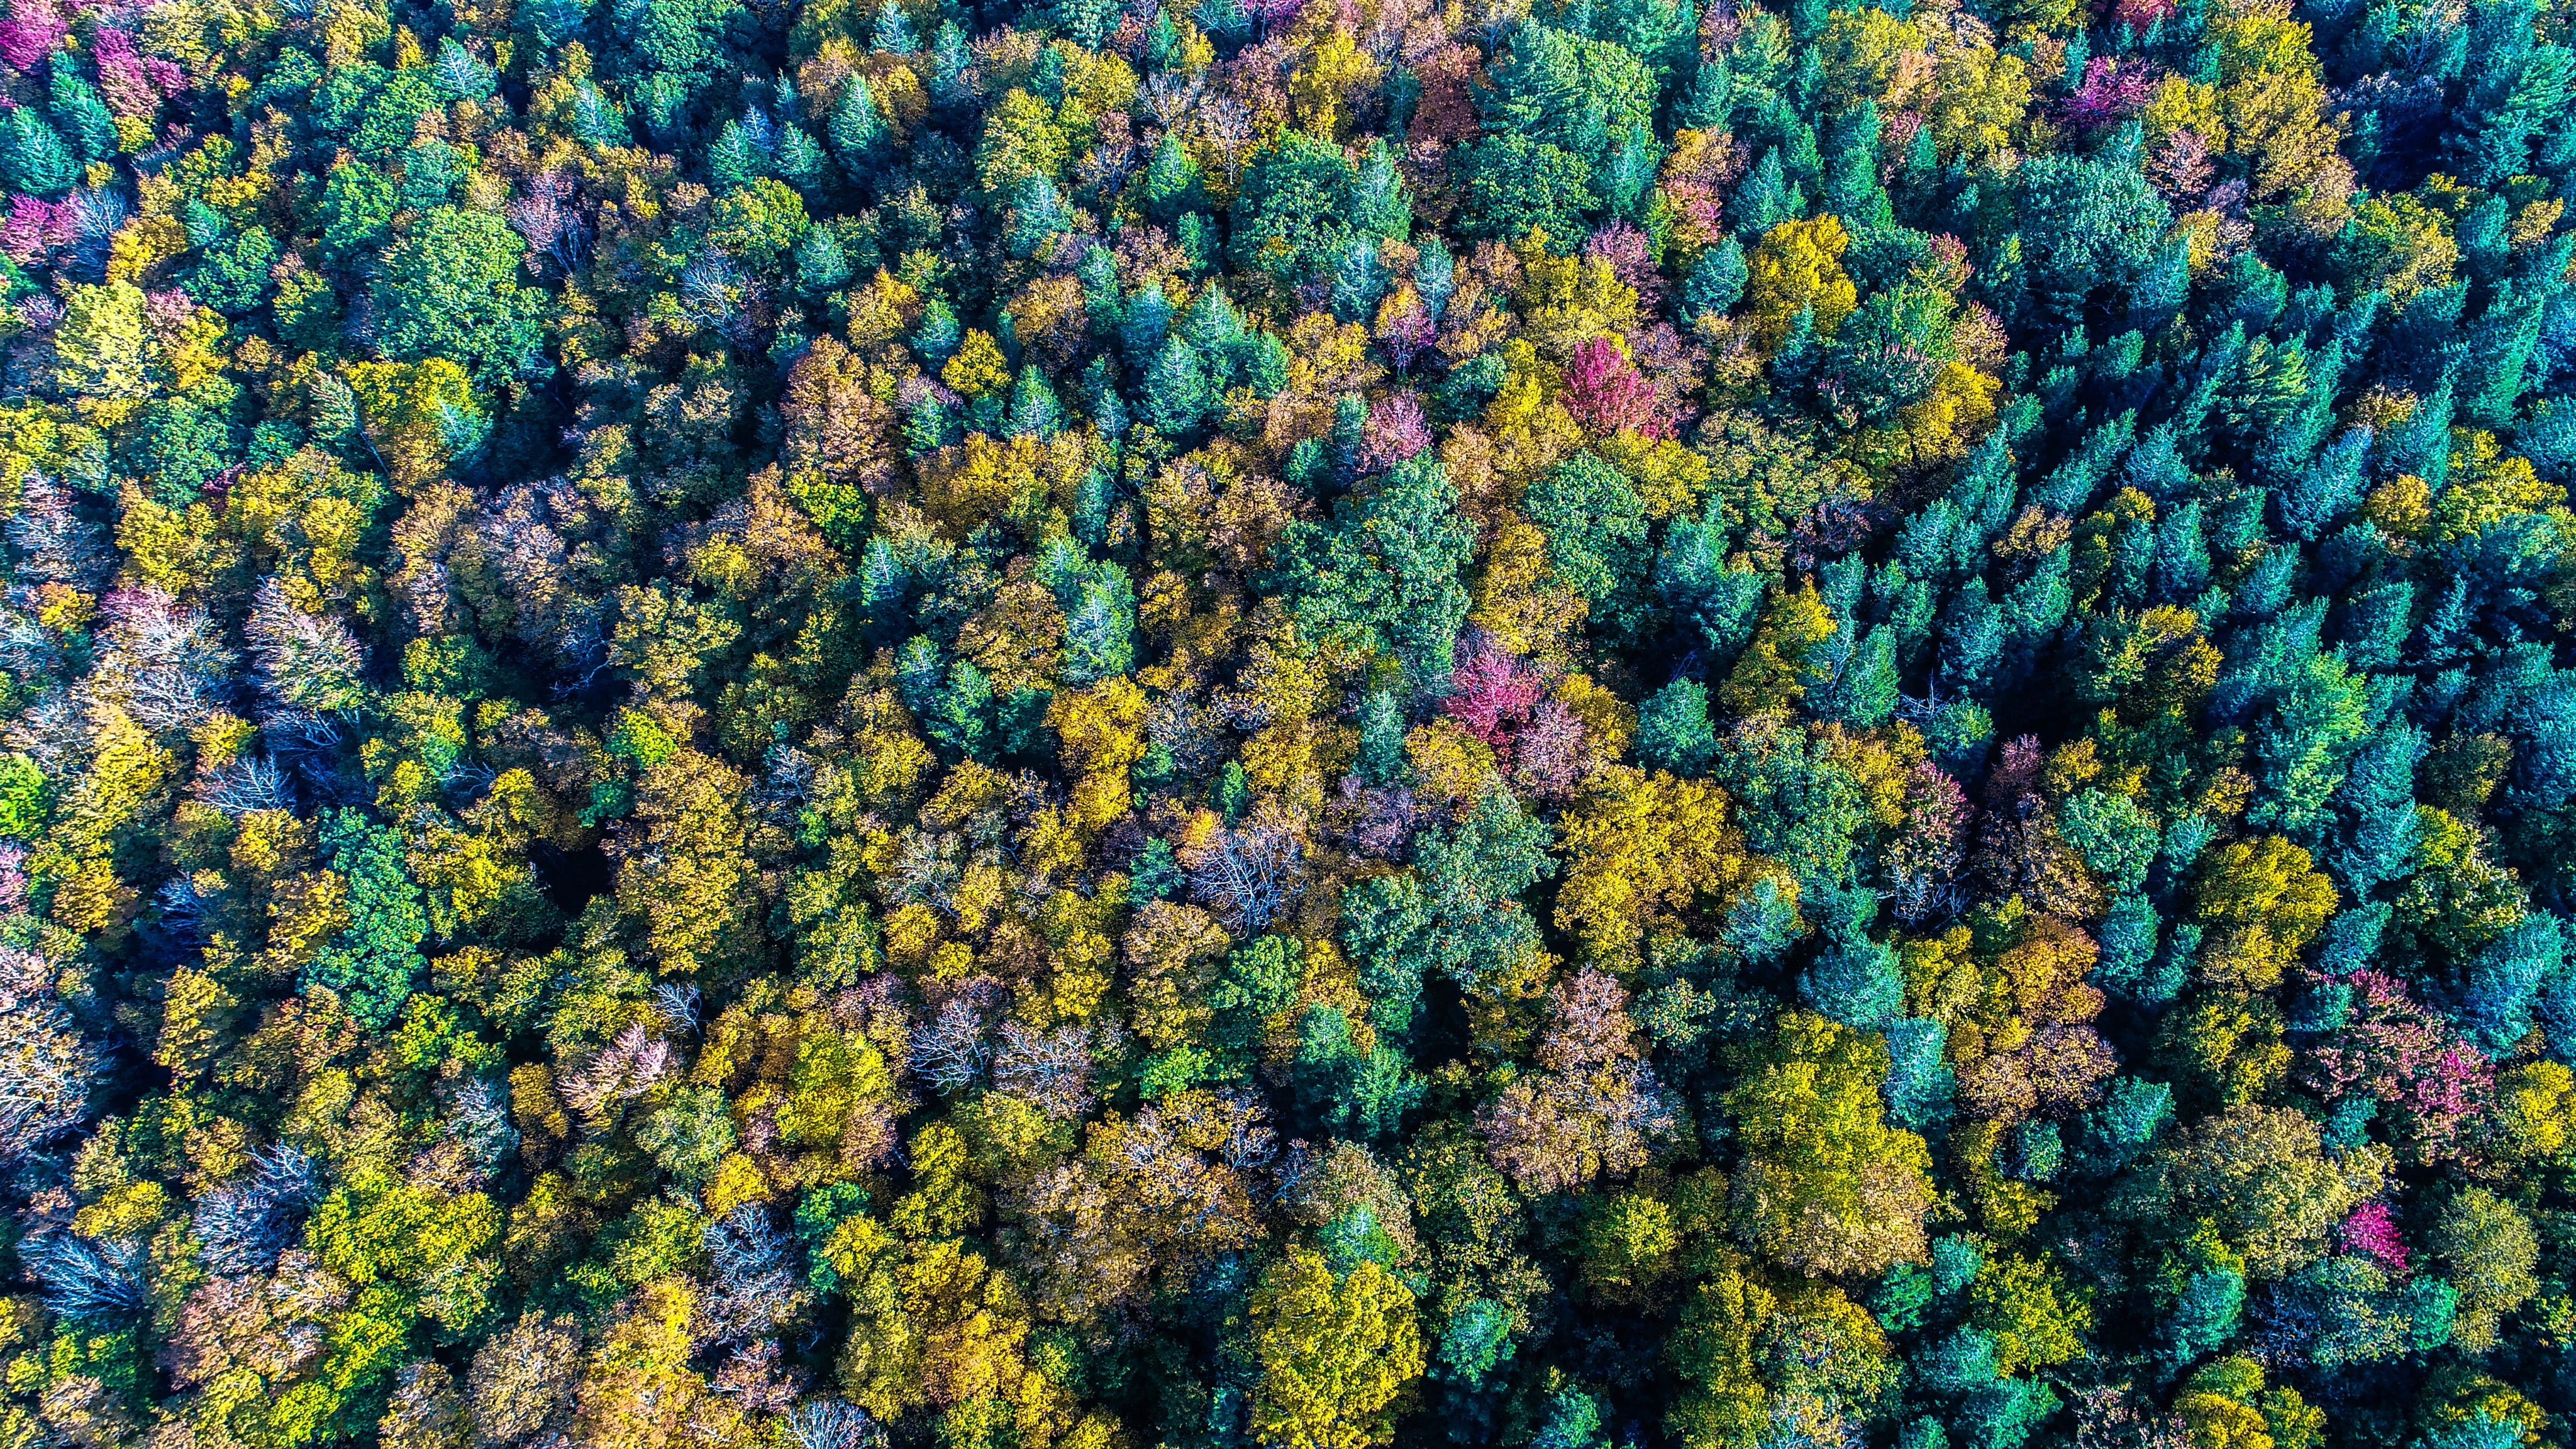 aerial view photo of forest during daytime